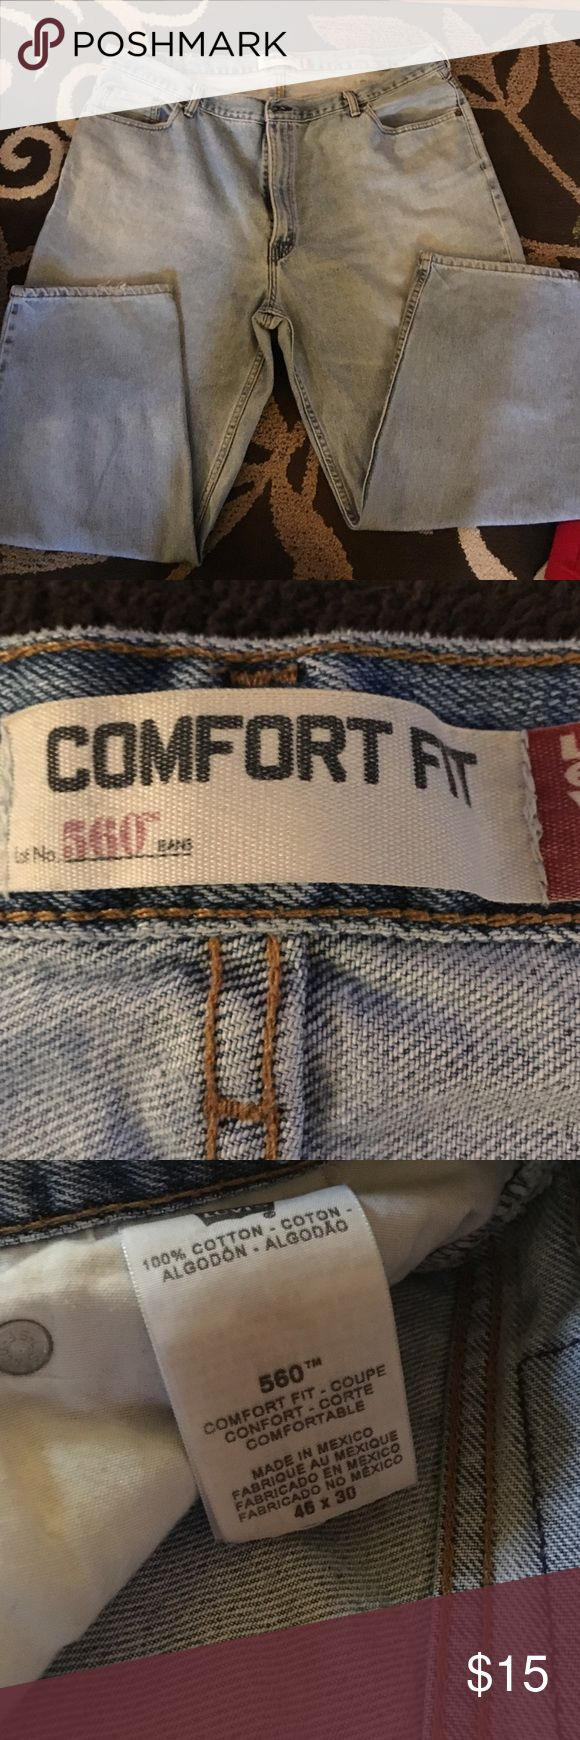 Levi Strauss 560 brand men's jeans 46x30 Men's, Levi Strauss 560 brand jeans, size 46x30. Great condition, some light fraying in the right leg, other than that no damage! Smoke free home, make me an offer and don't forget to bundle! Levi's Jeans Relaxed